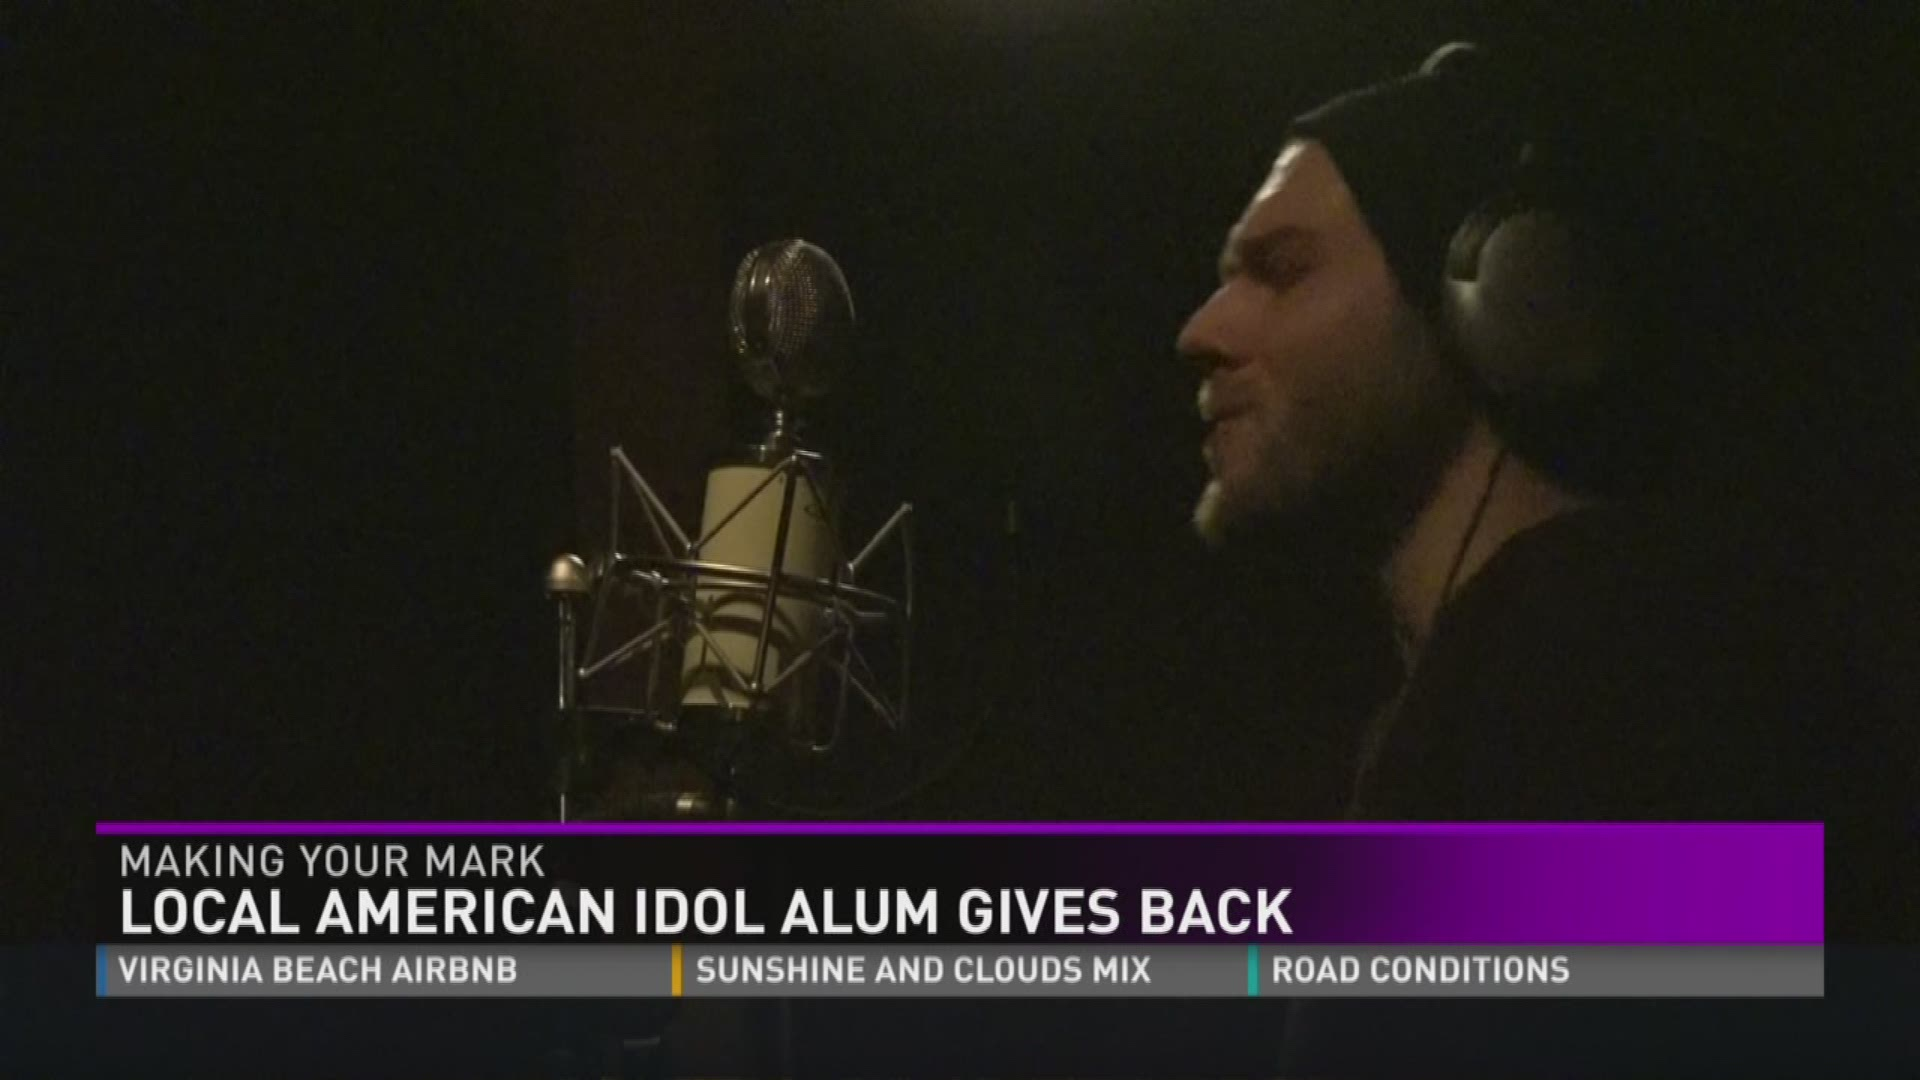 Making Your Mark: Local American Idol alum gives back